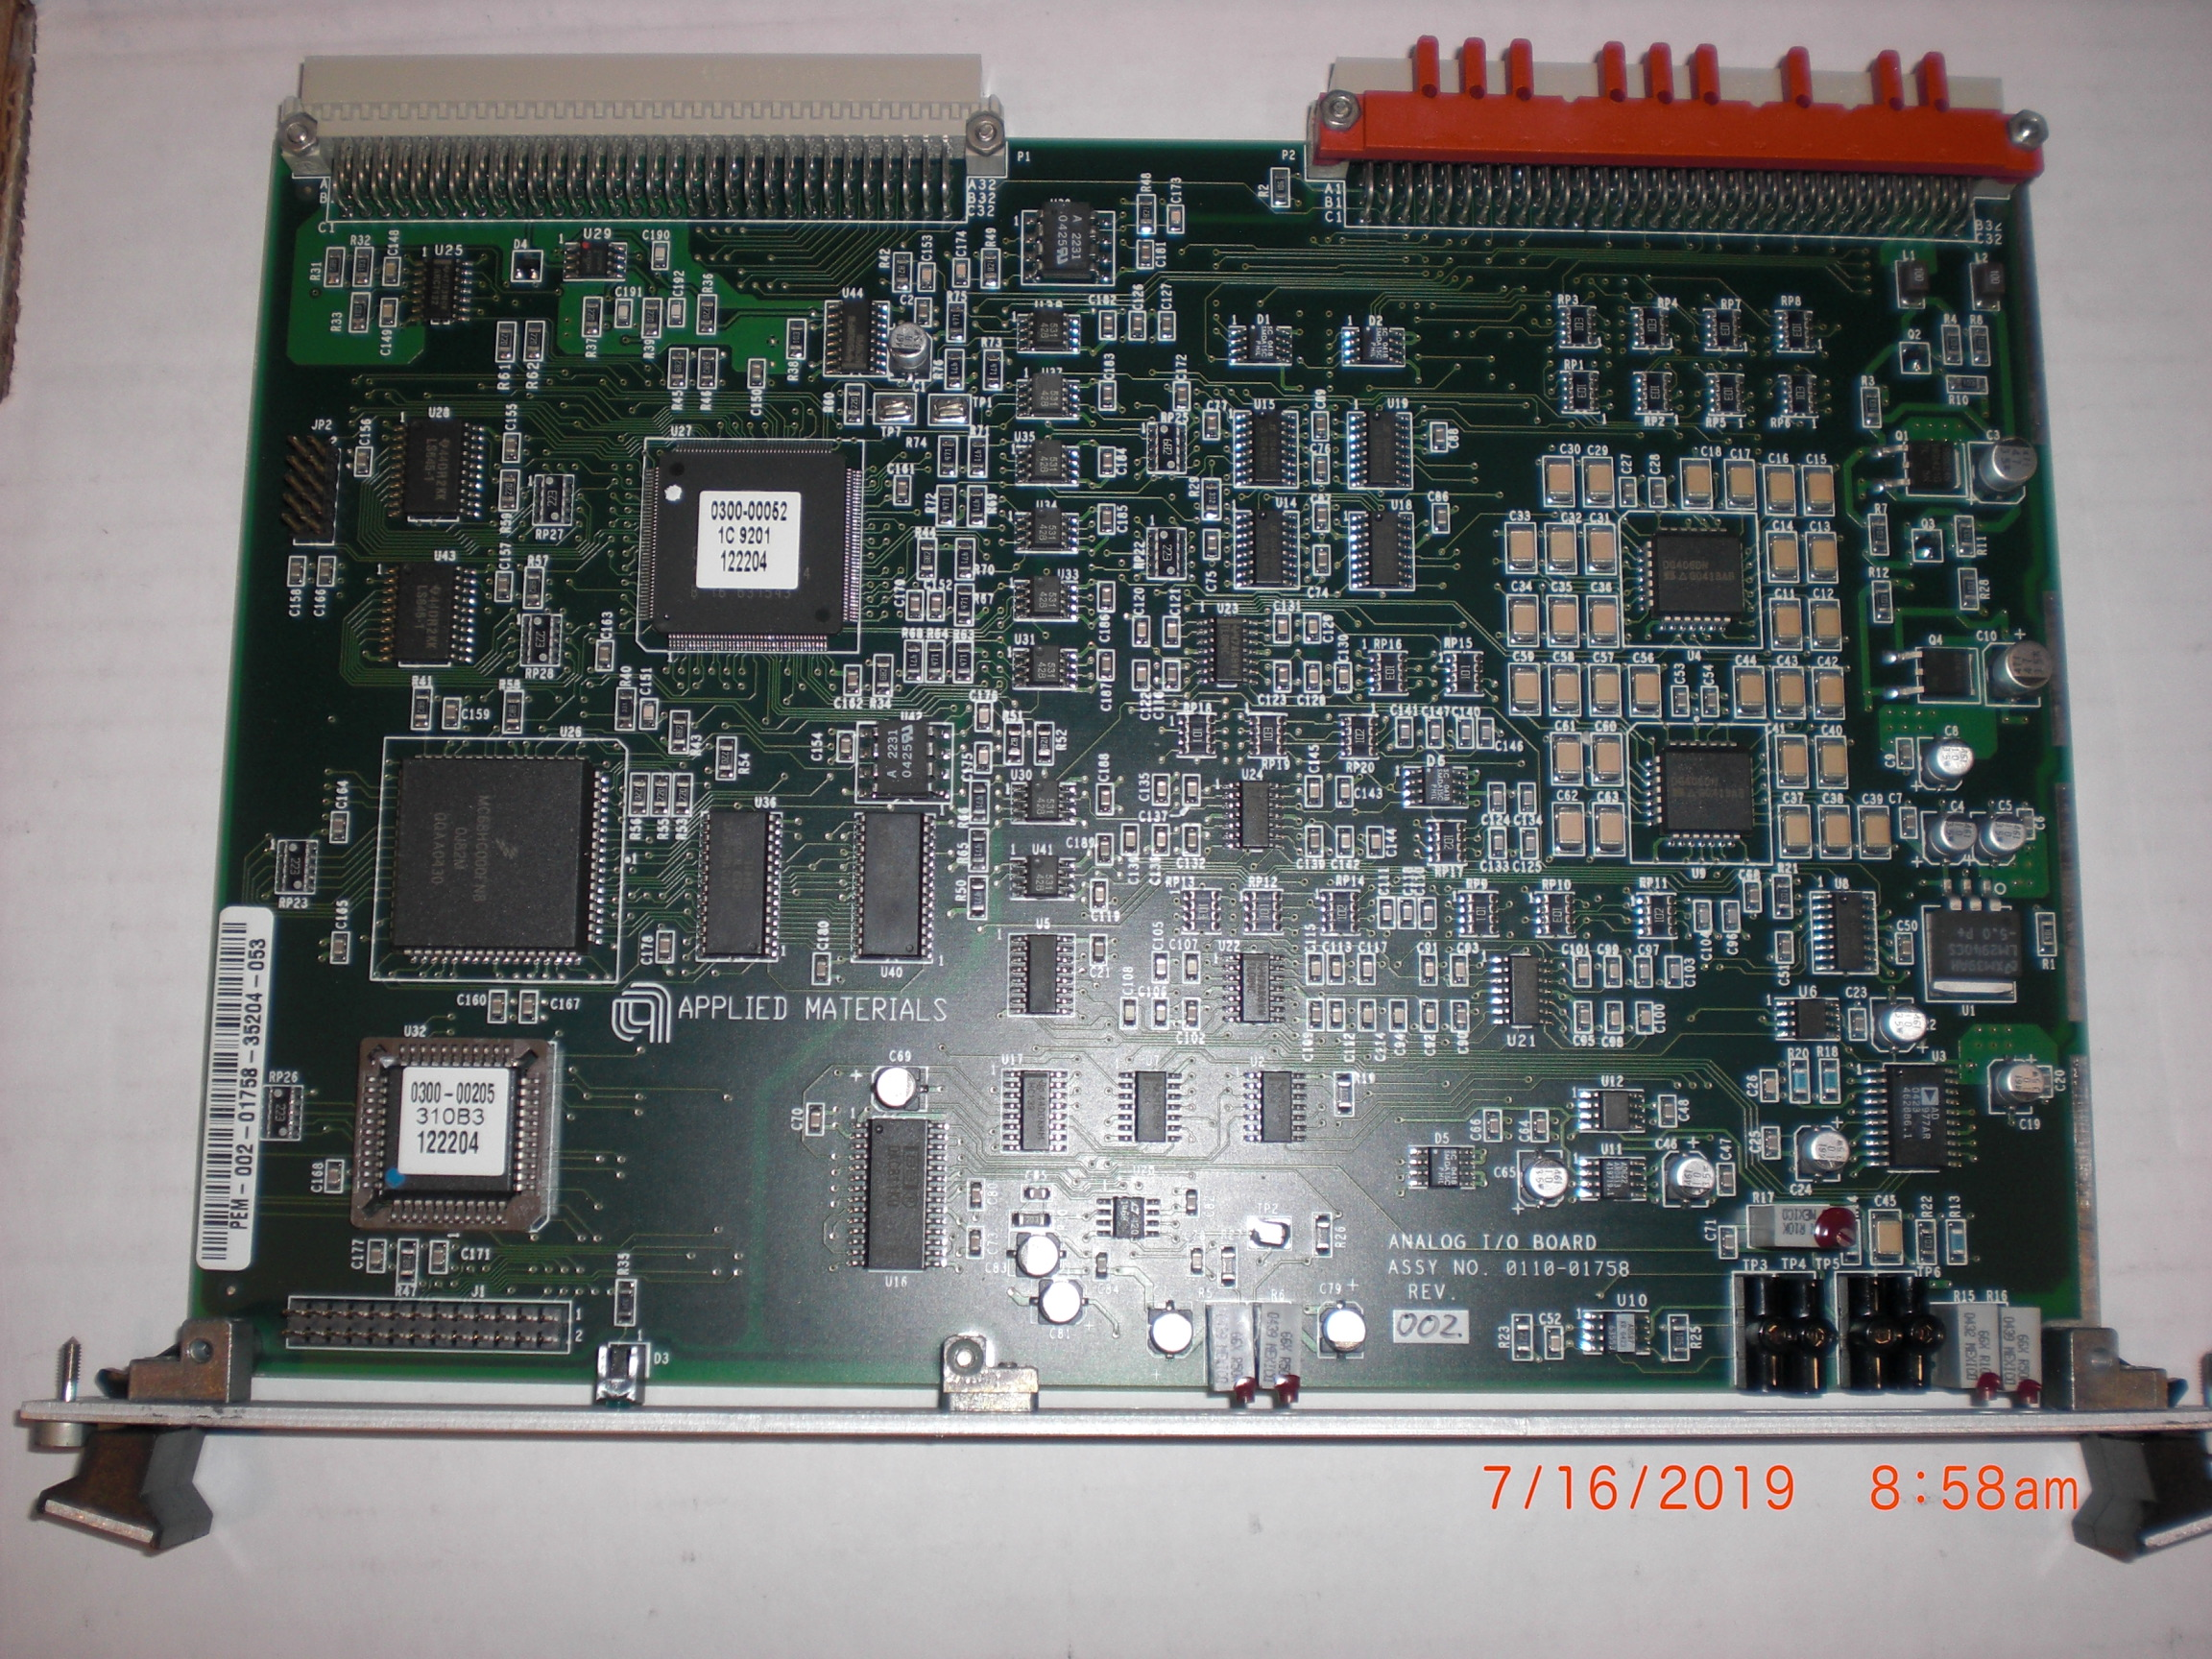 PCB Applied Materials (AMAT) 0110-01758 Analog I/O Board